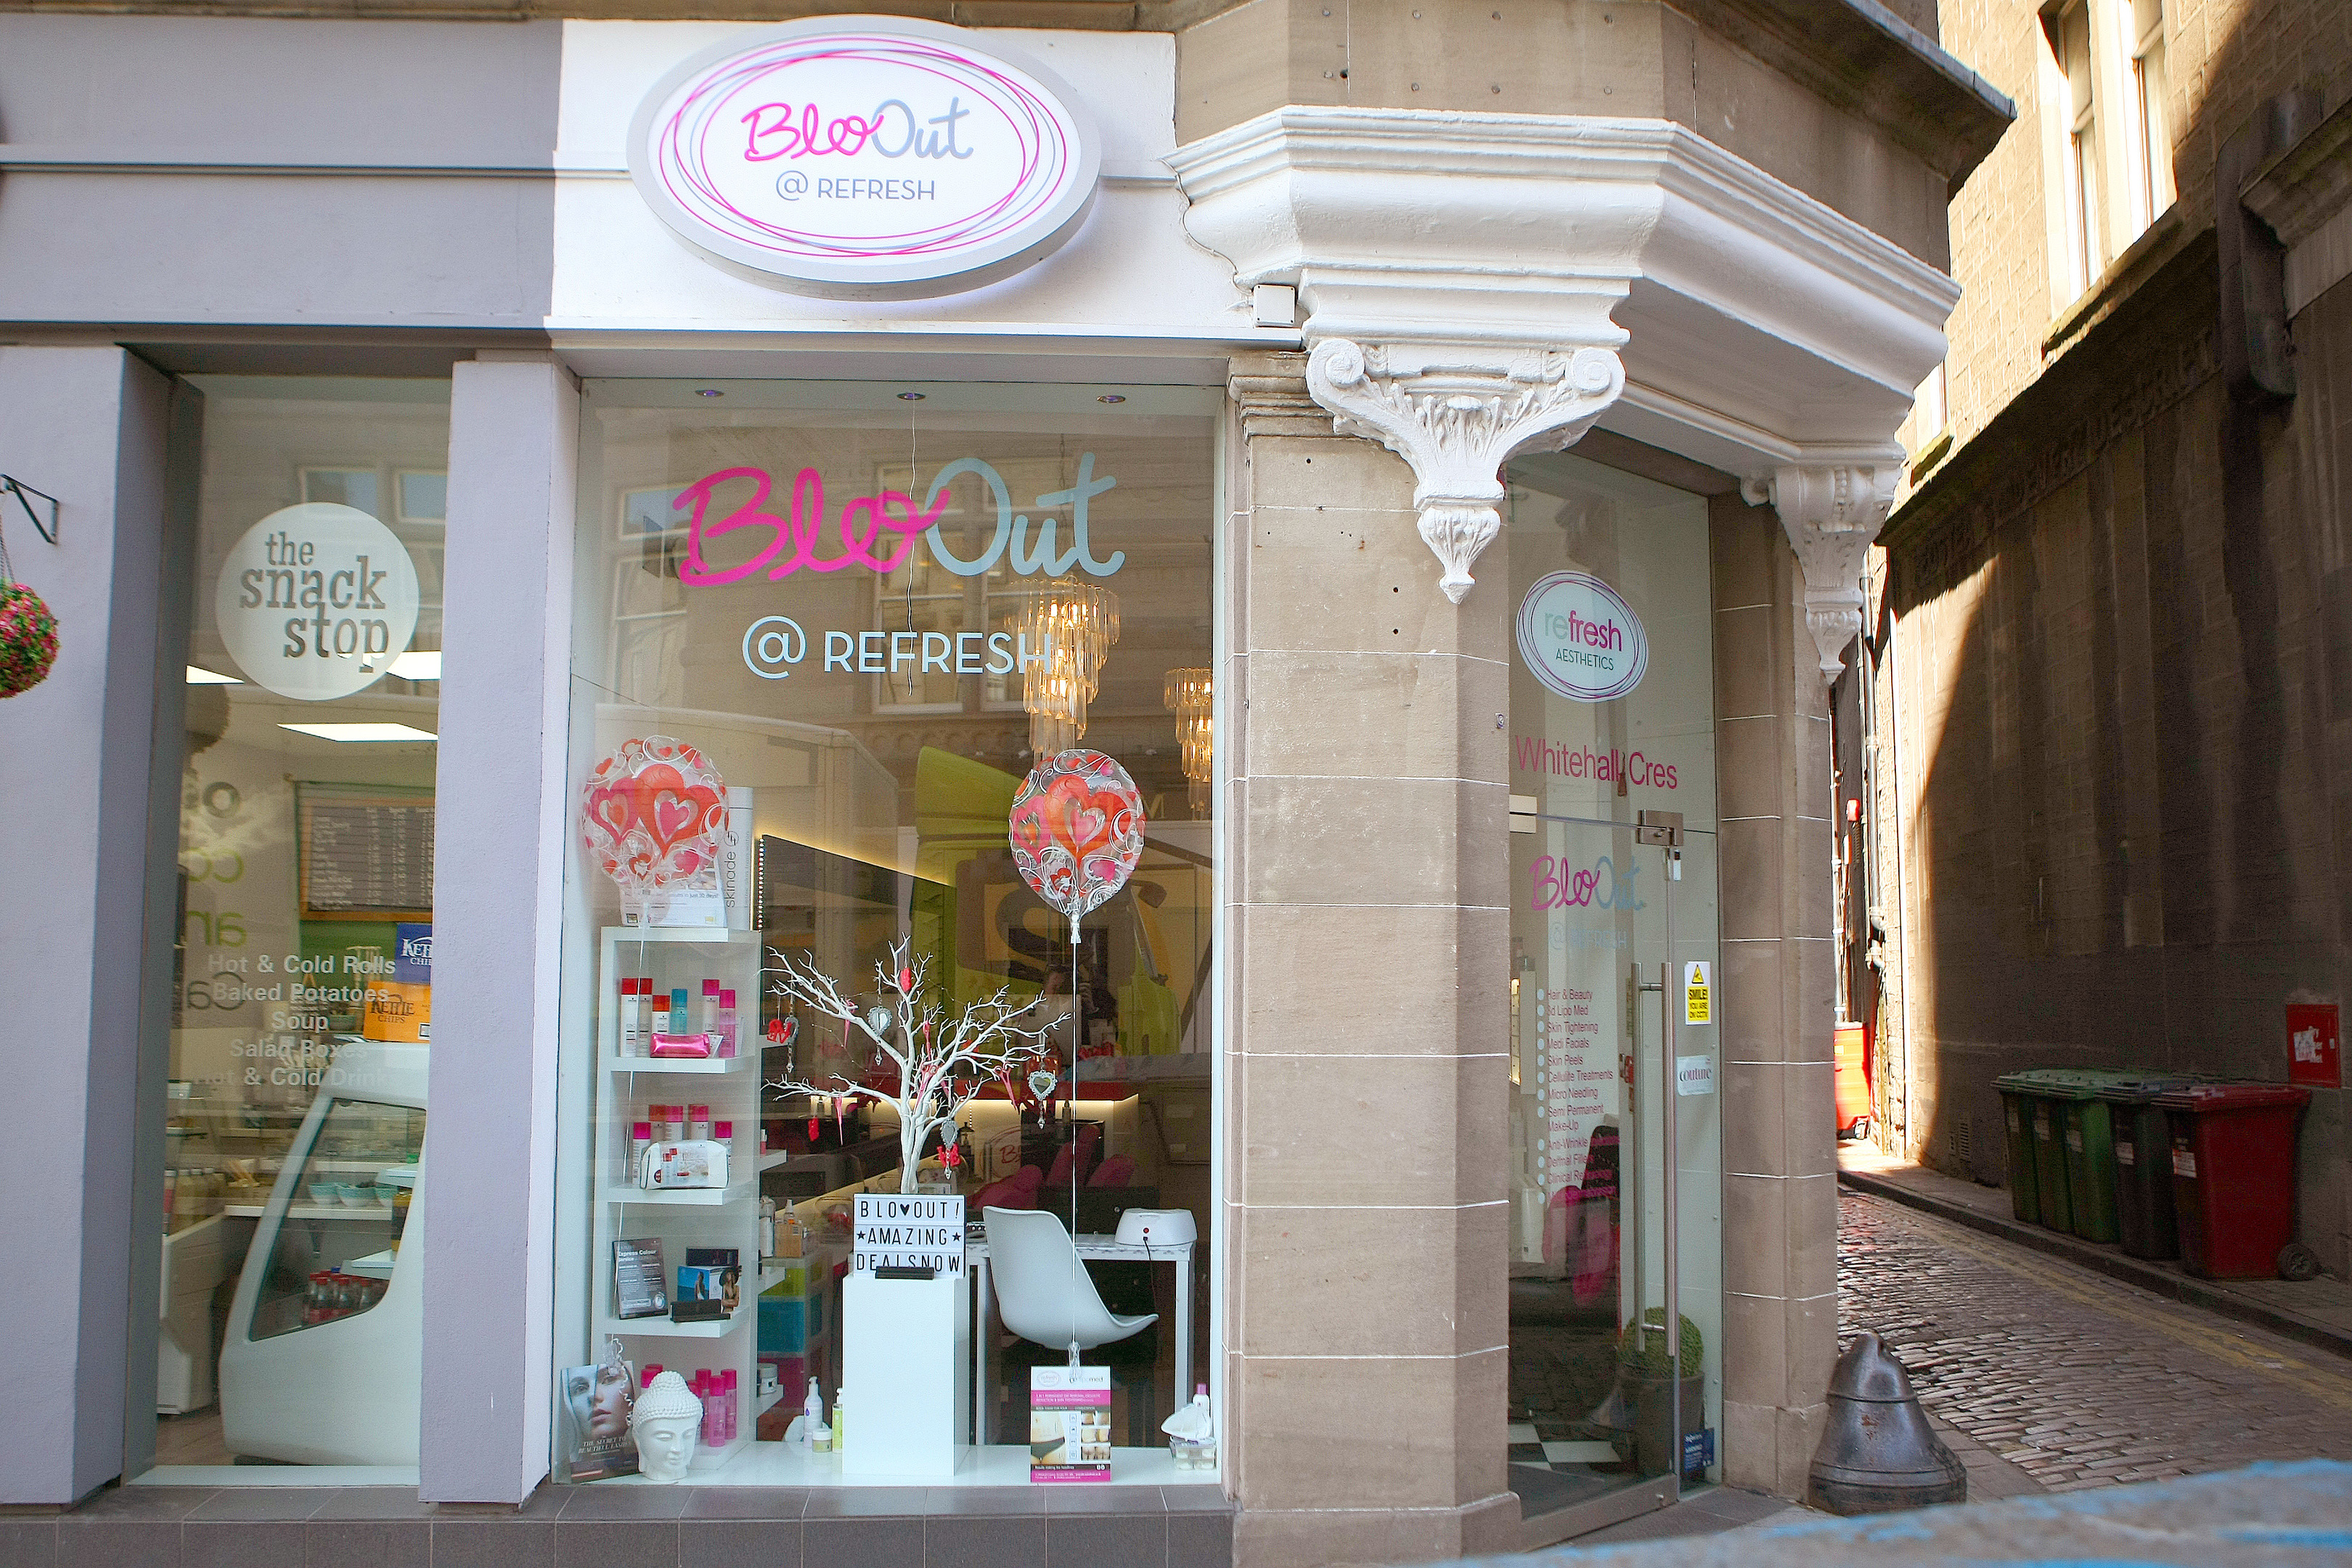 Blo Out & Refresh on Whitehall Crescent